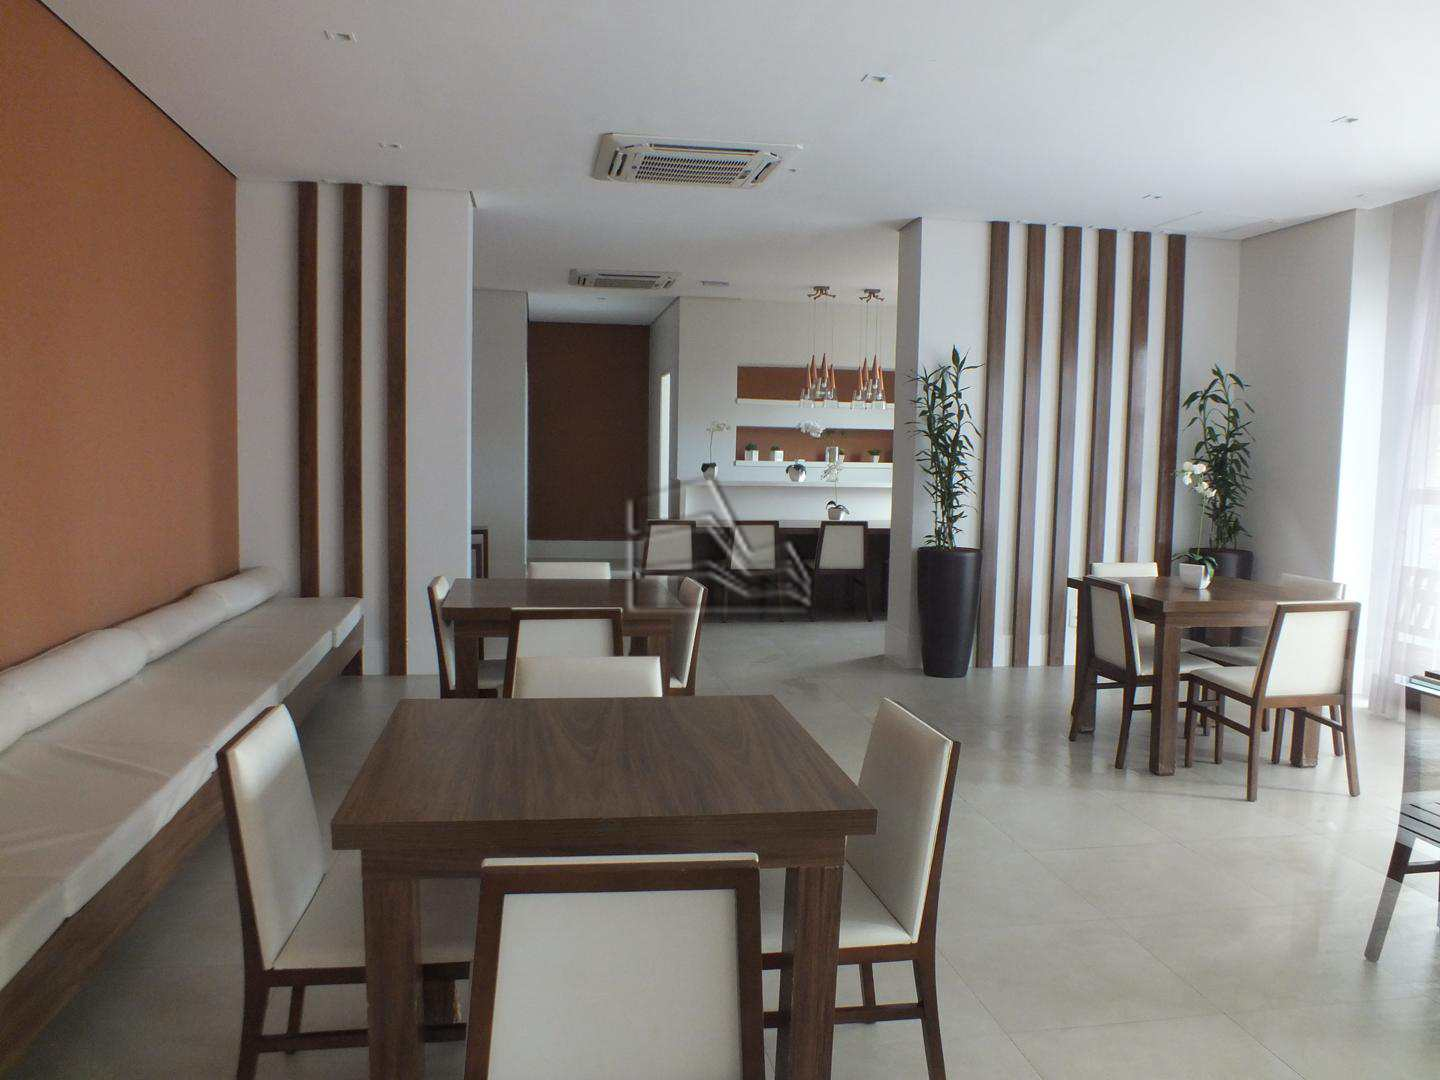 9. AREAS FUSION HOME (5)